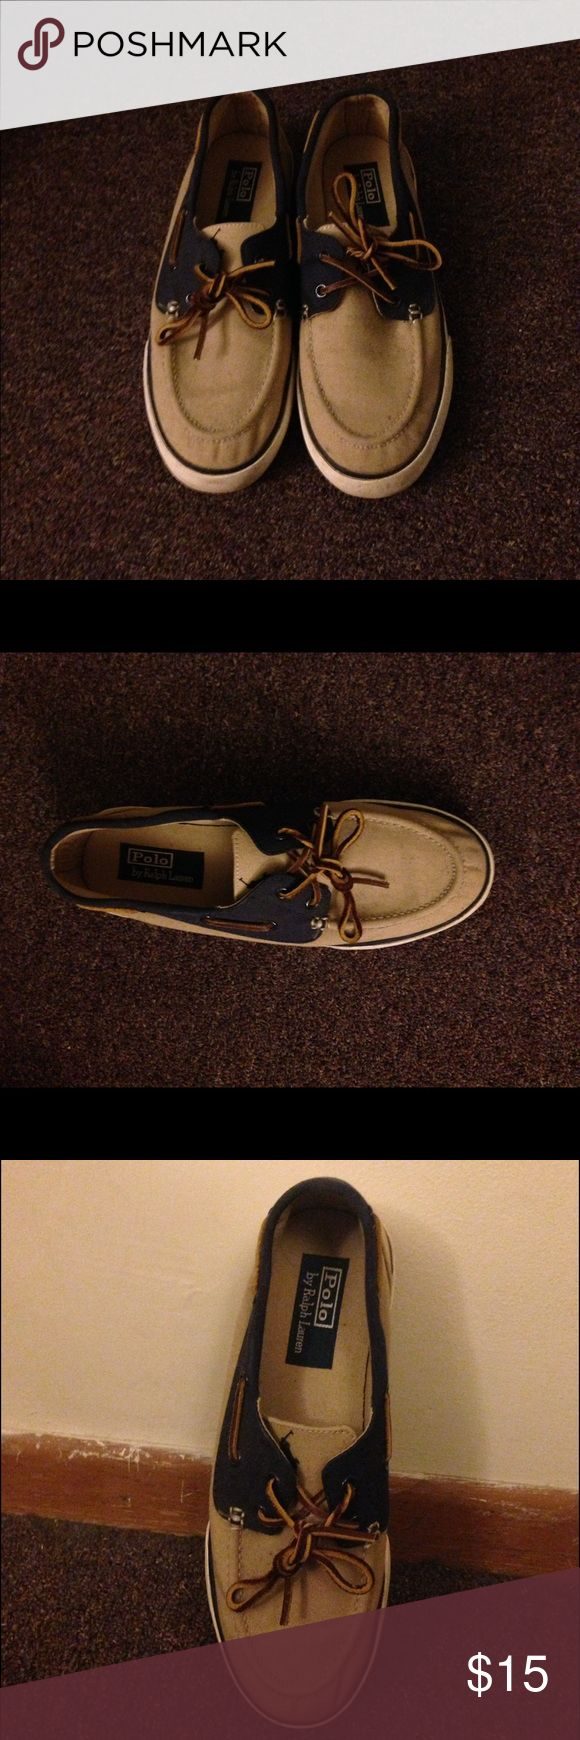 Polo by Ralph Lauren Boat Shoes Barely worn Polo Boat shoes. Great for the summer! Polo by Ralph Lauren Shoes Boat Shoes